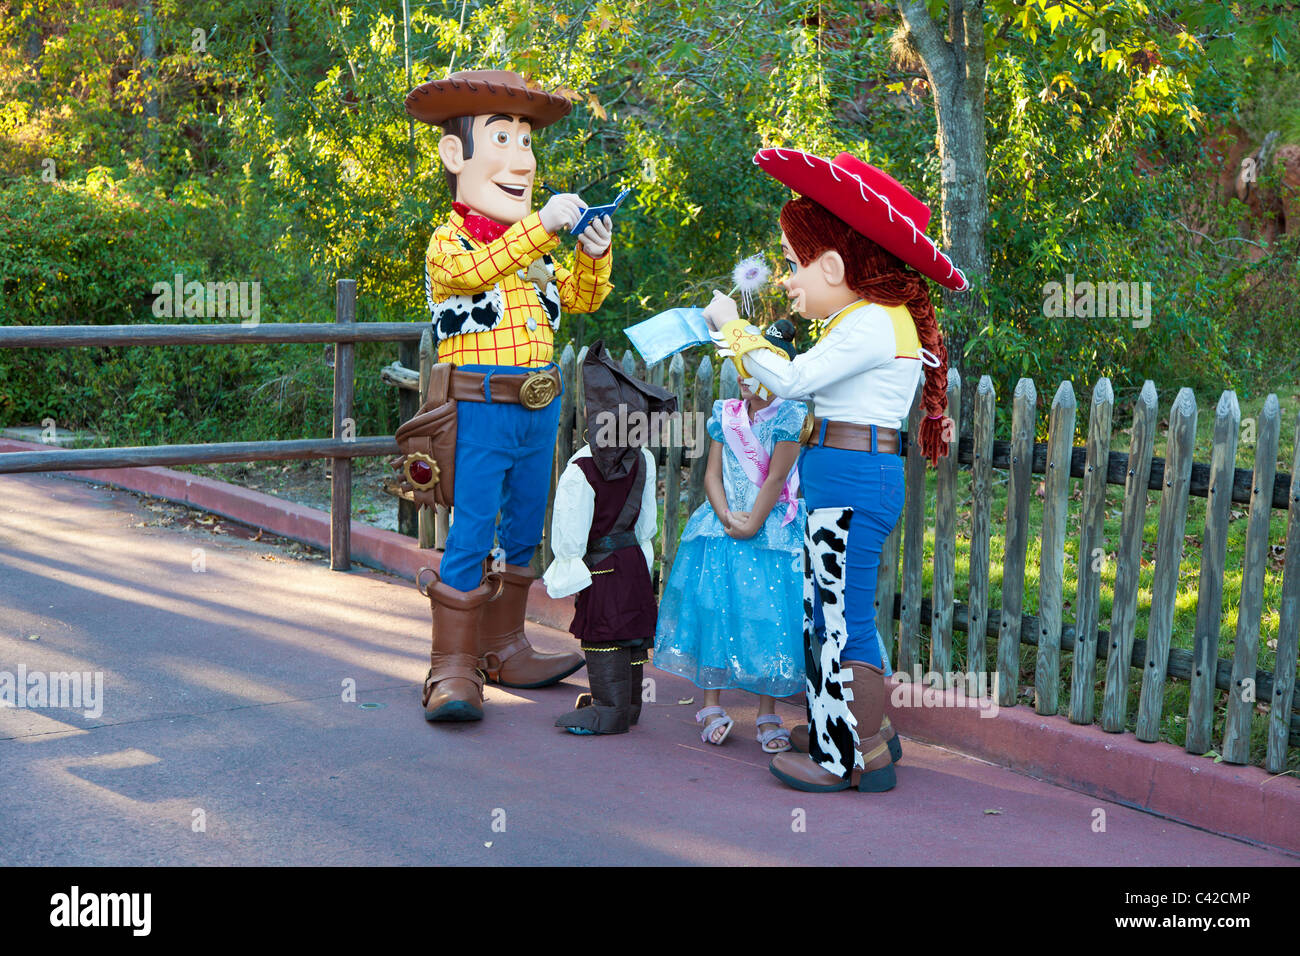 Toy Story characters Woody and Jessie sign autographs for young children in Magic Kingdom at Disney World, Kissimmee, - Stock Image